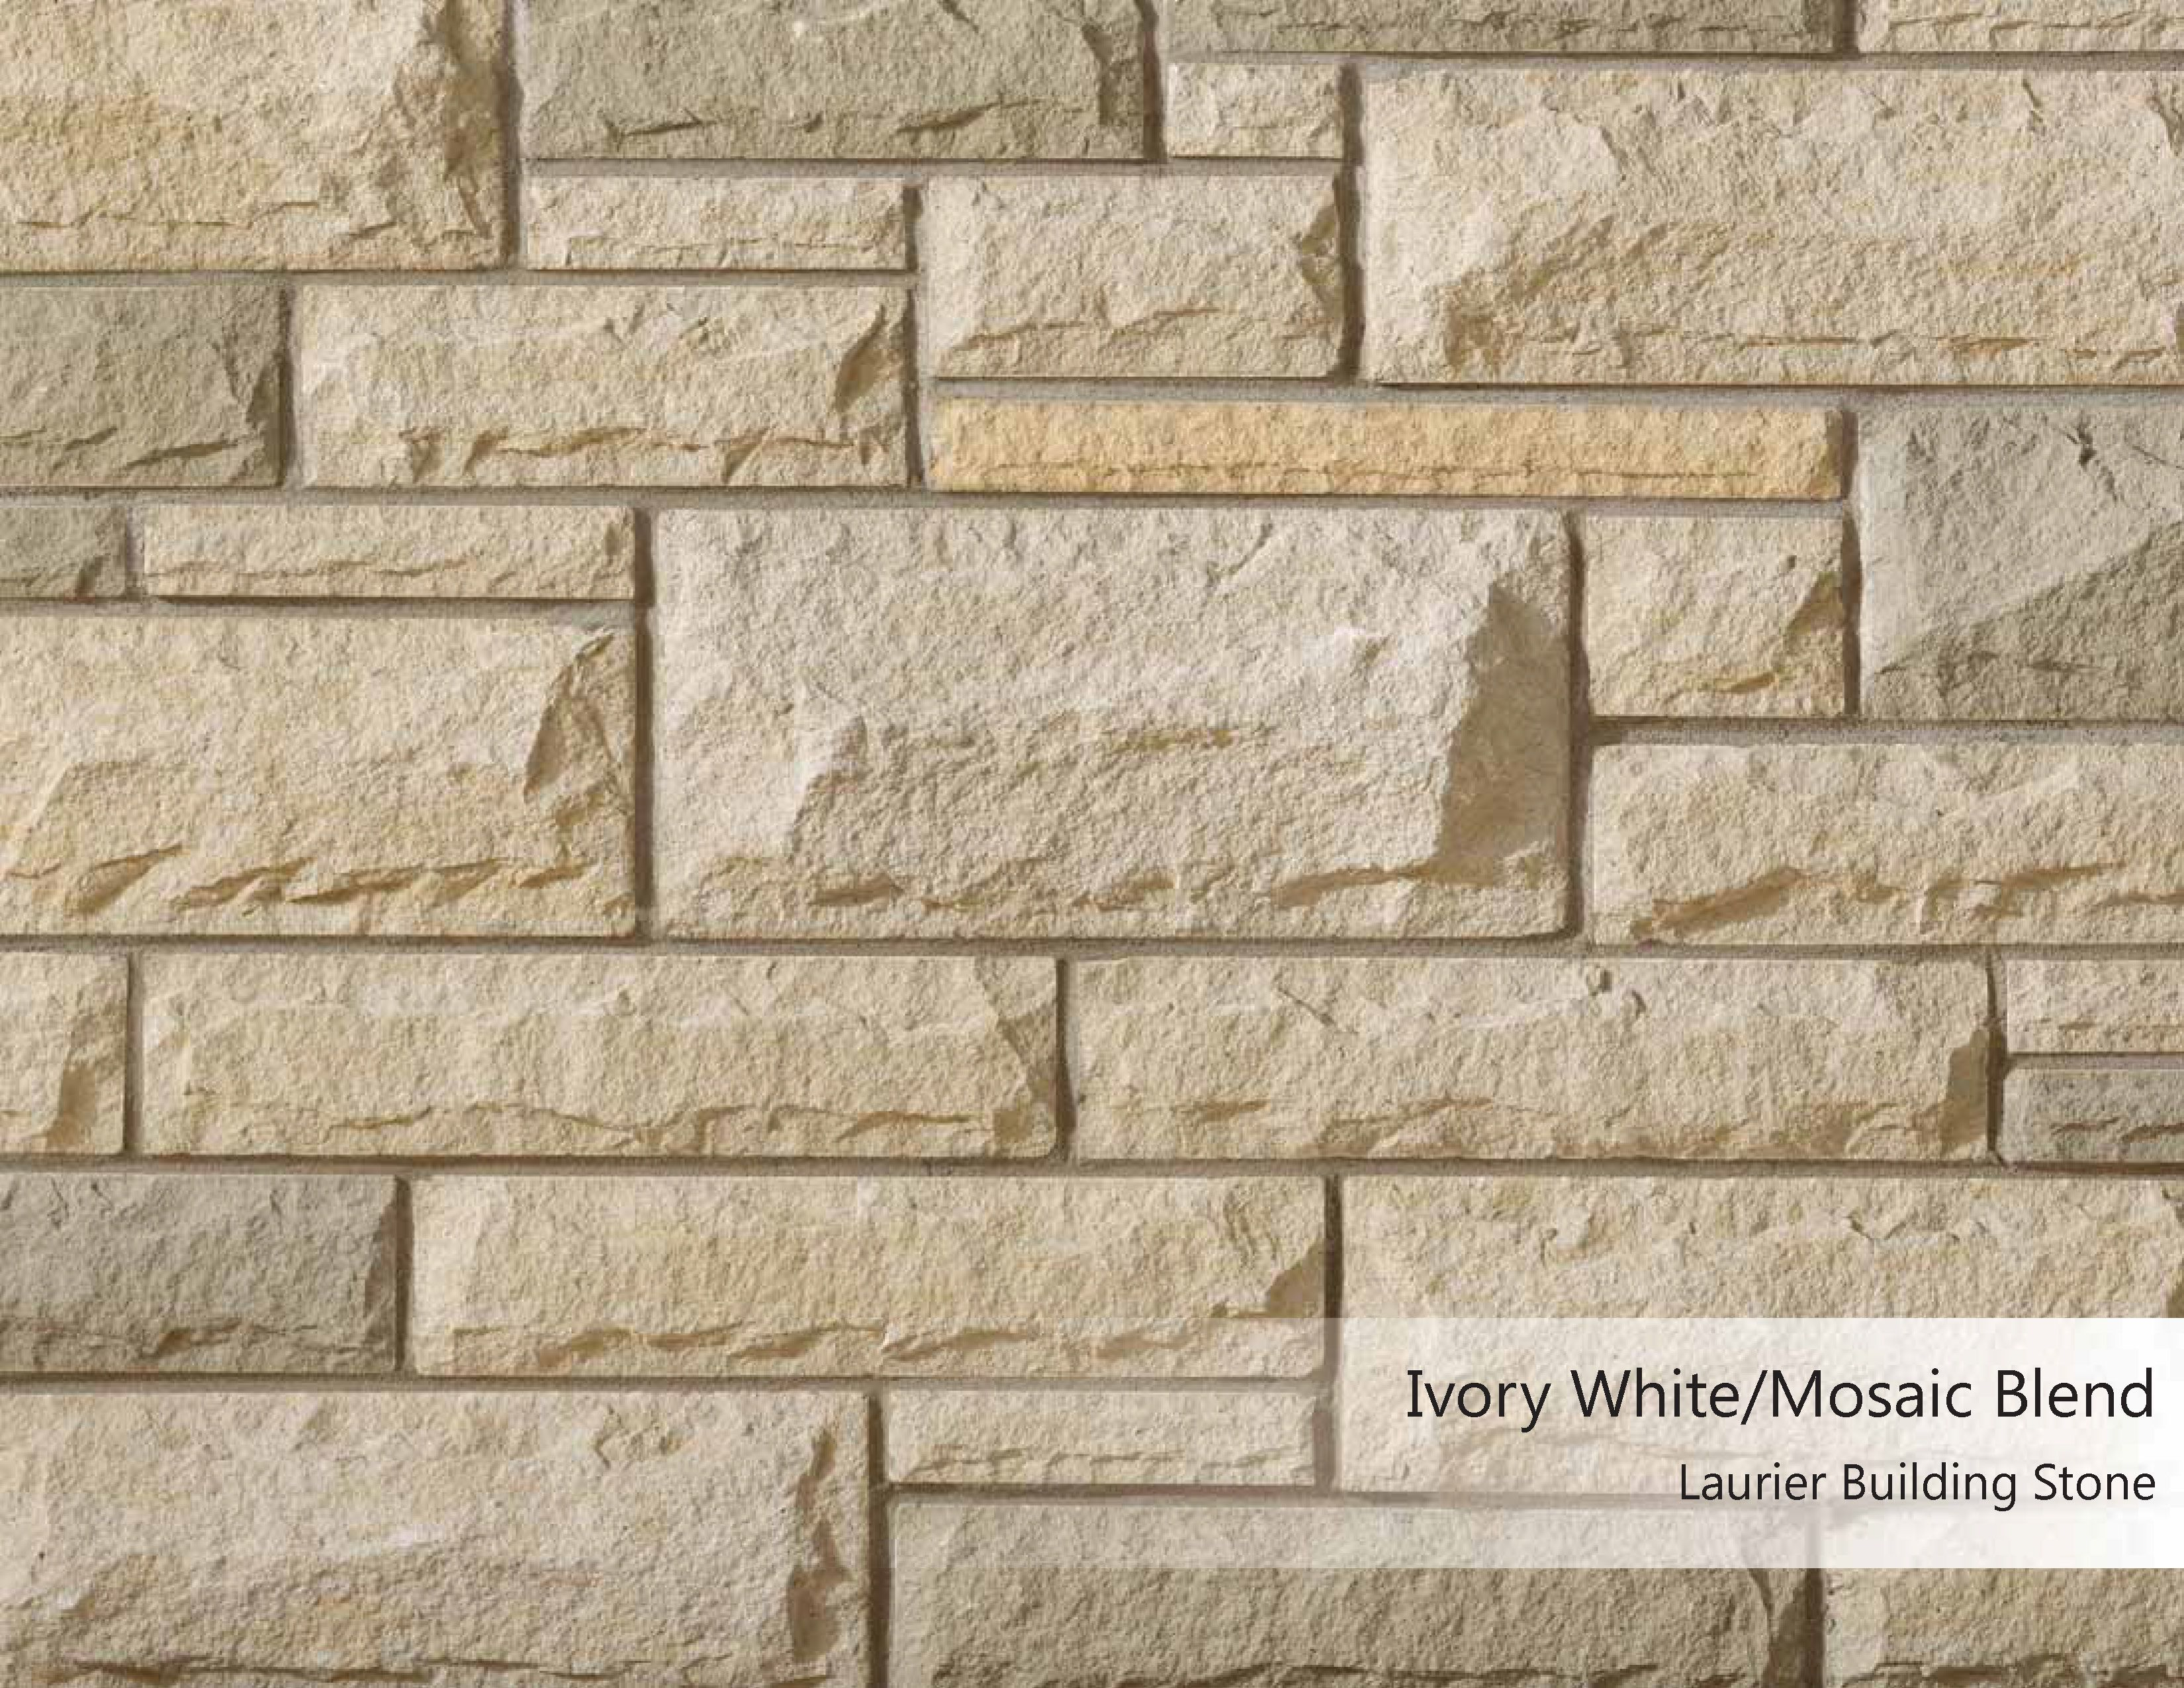 Laurier Building Stone  Ivory Whitemosaic Blend